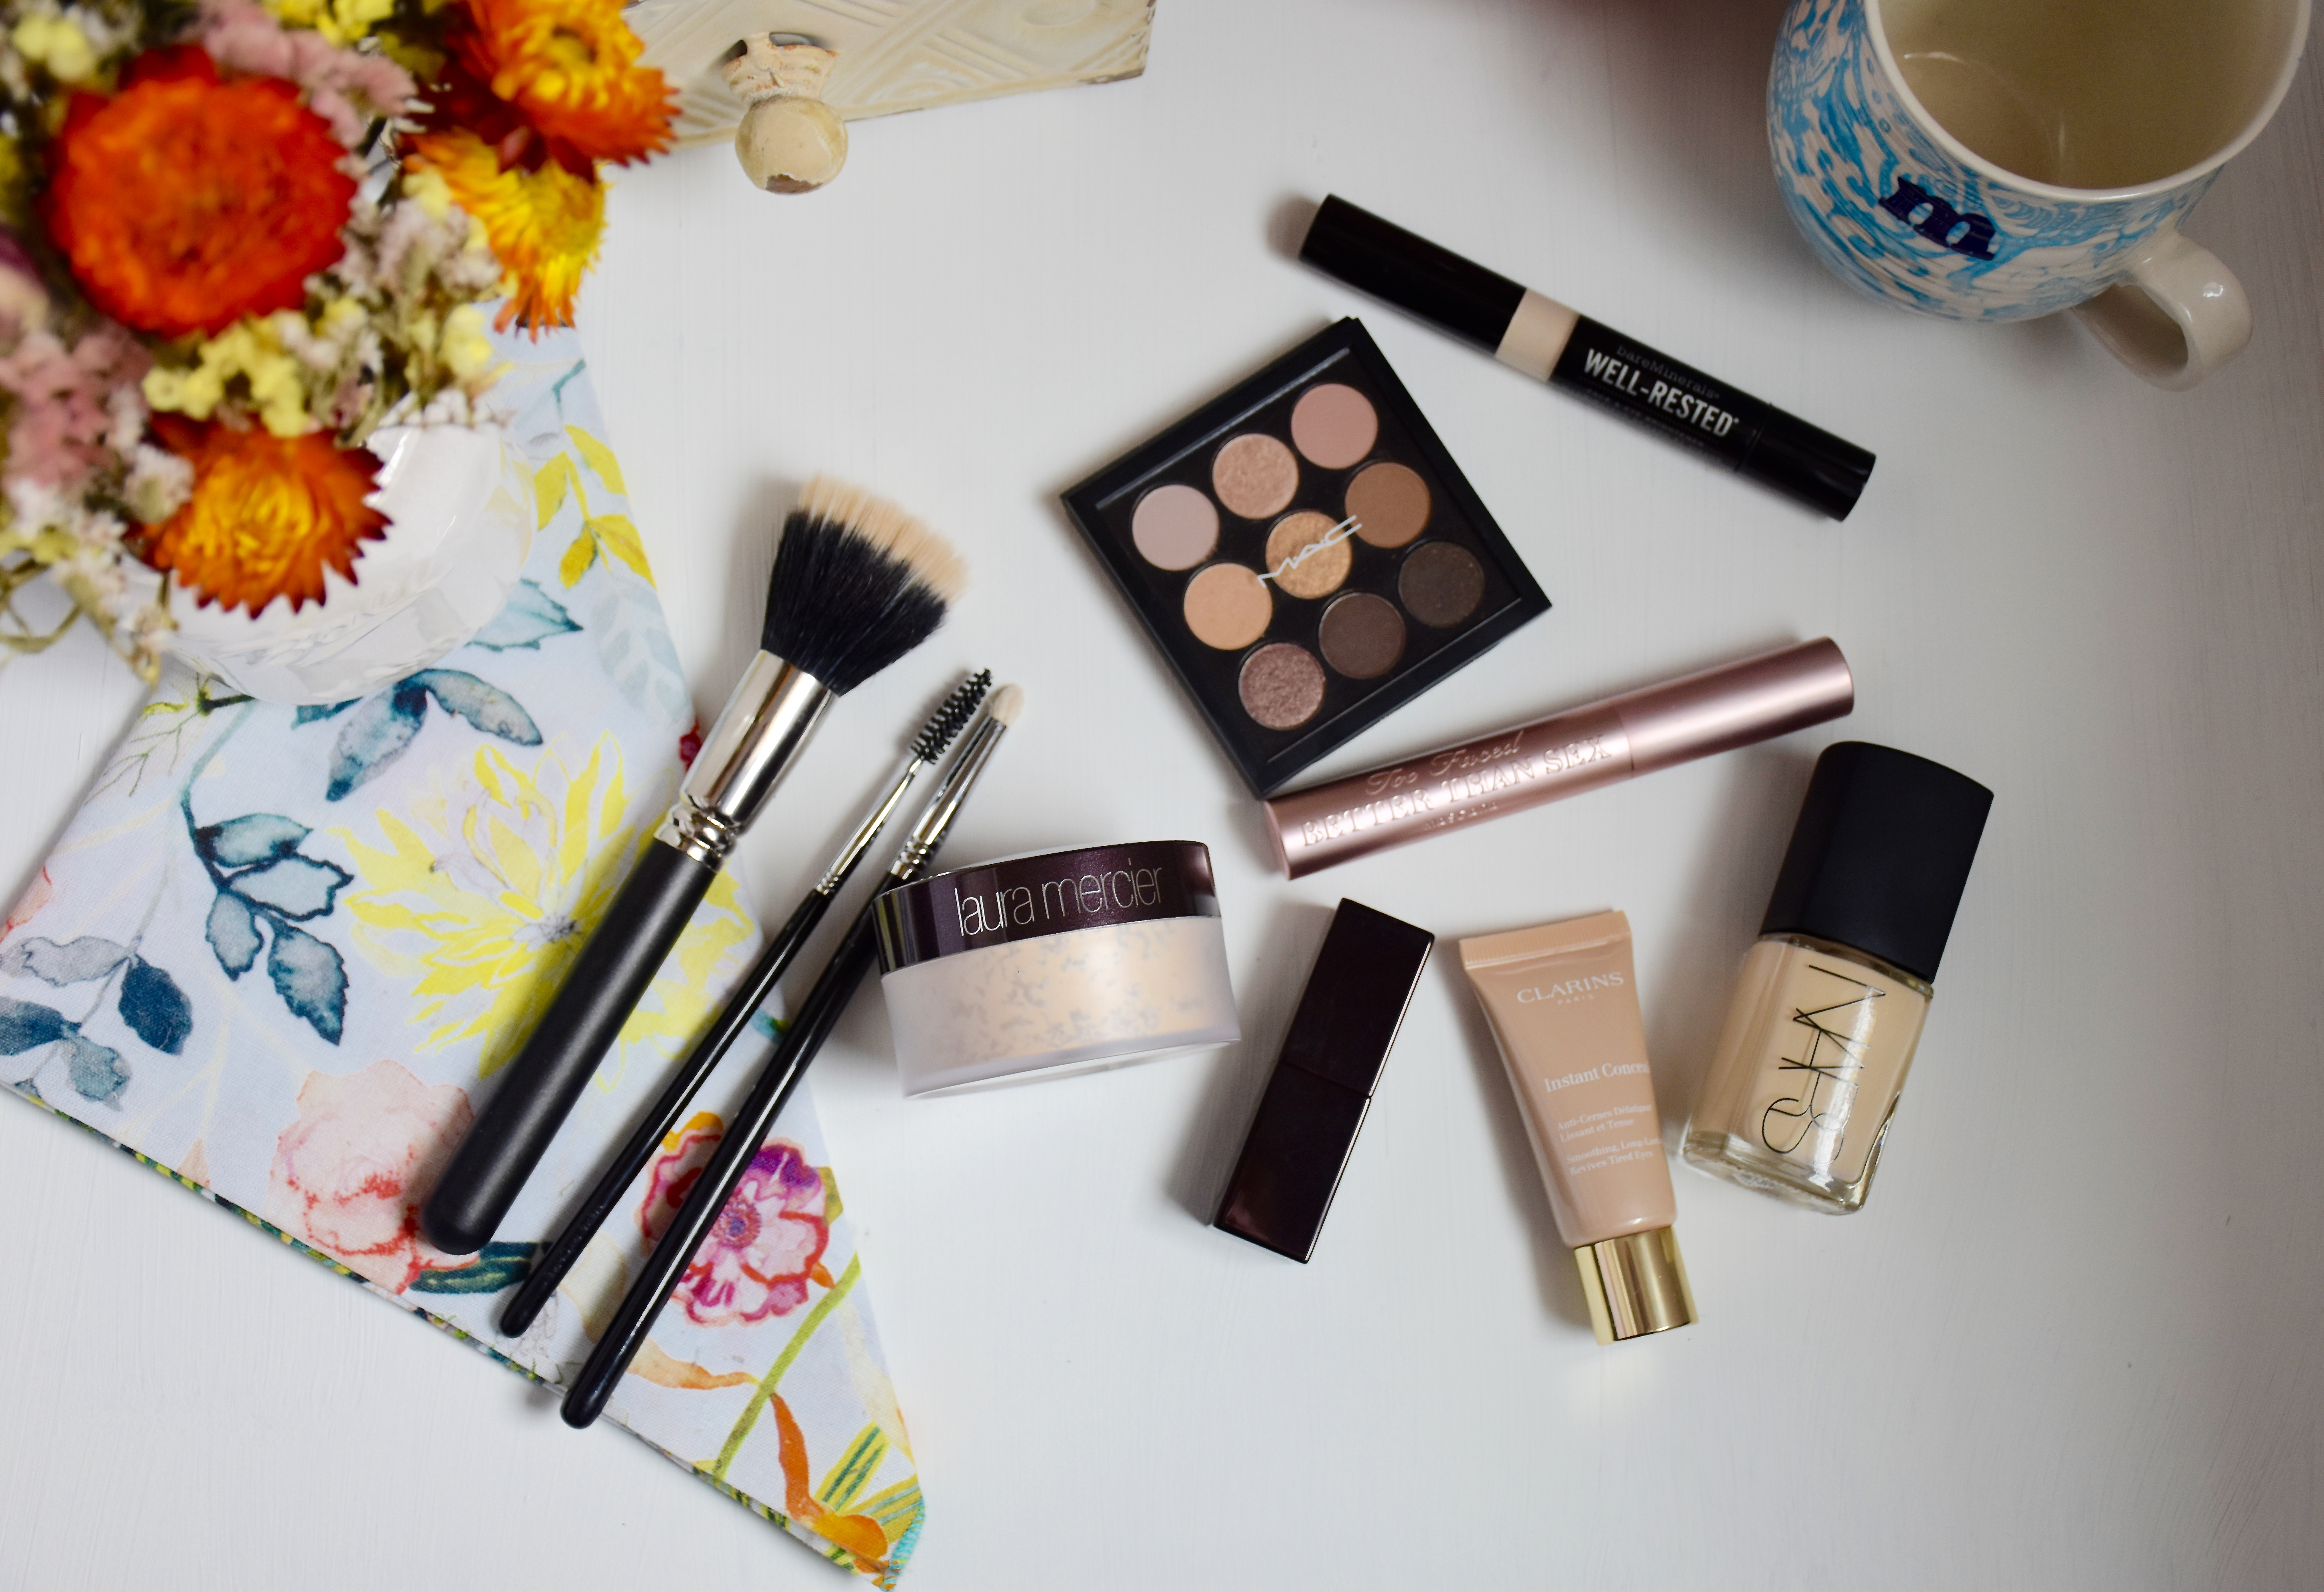 41d6402b5e55 Over the course of the last two months my makeup bag has had some serious  changes. I even bought a new makeup bag! This little beauty is from Kate  Spade and ...